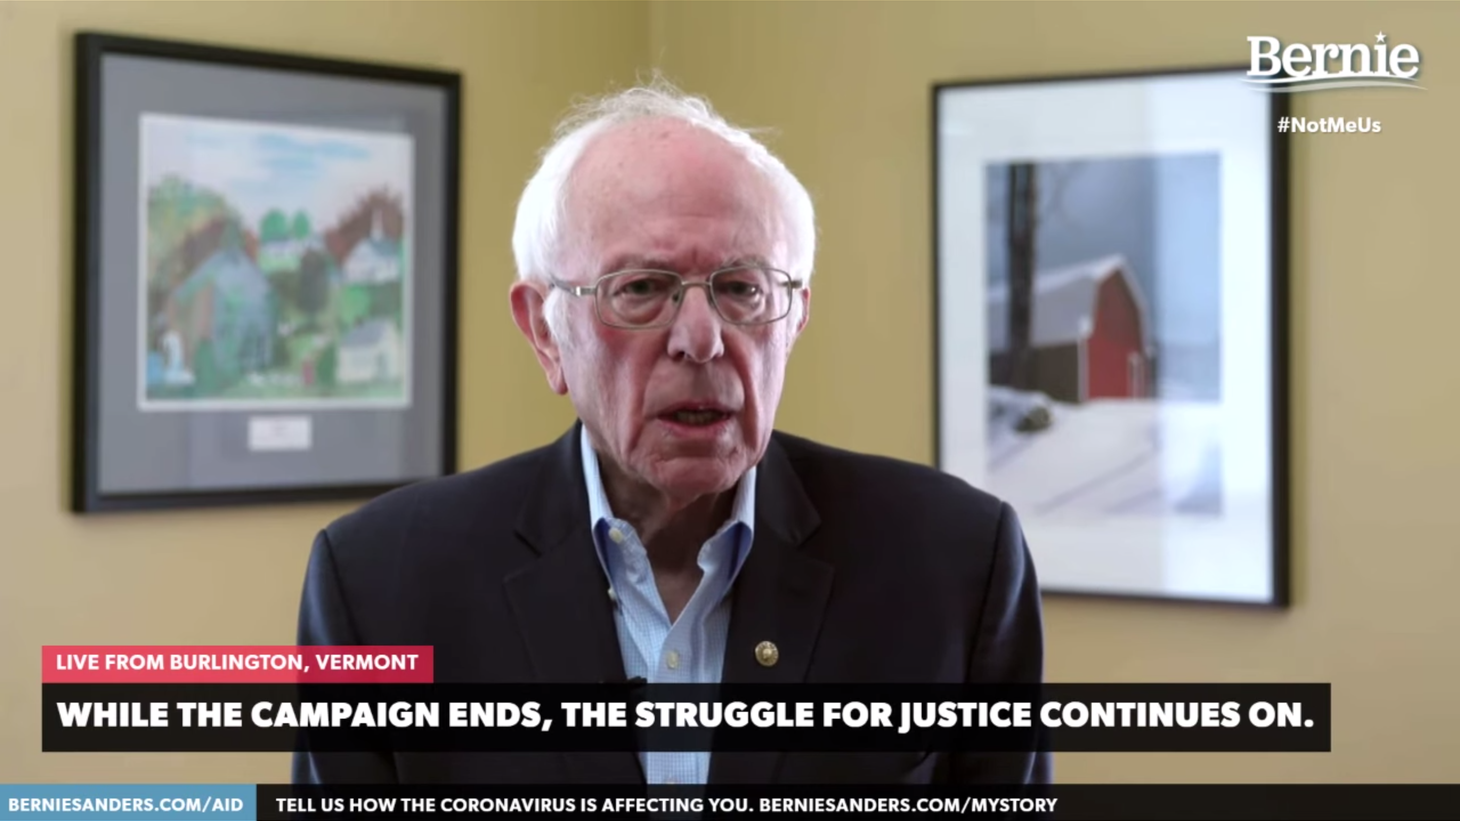 Bernie Sanders message following his announcement to suspend his campaign.